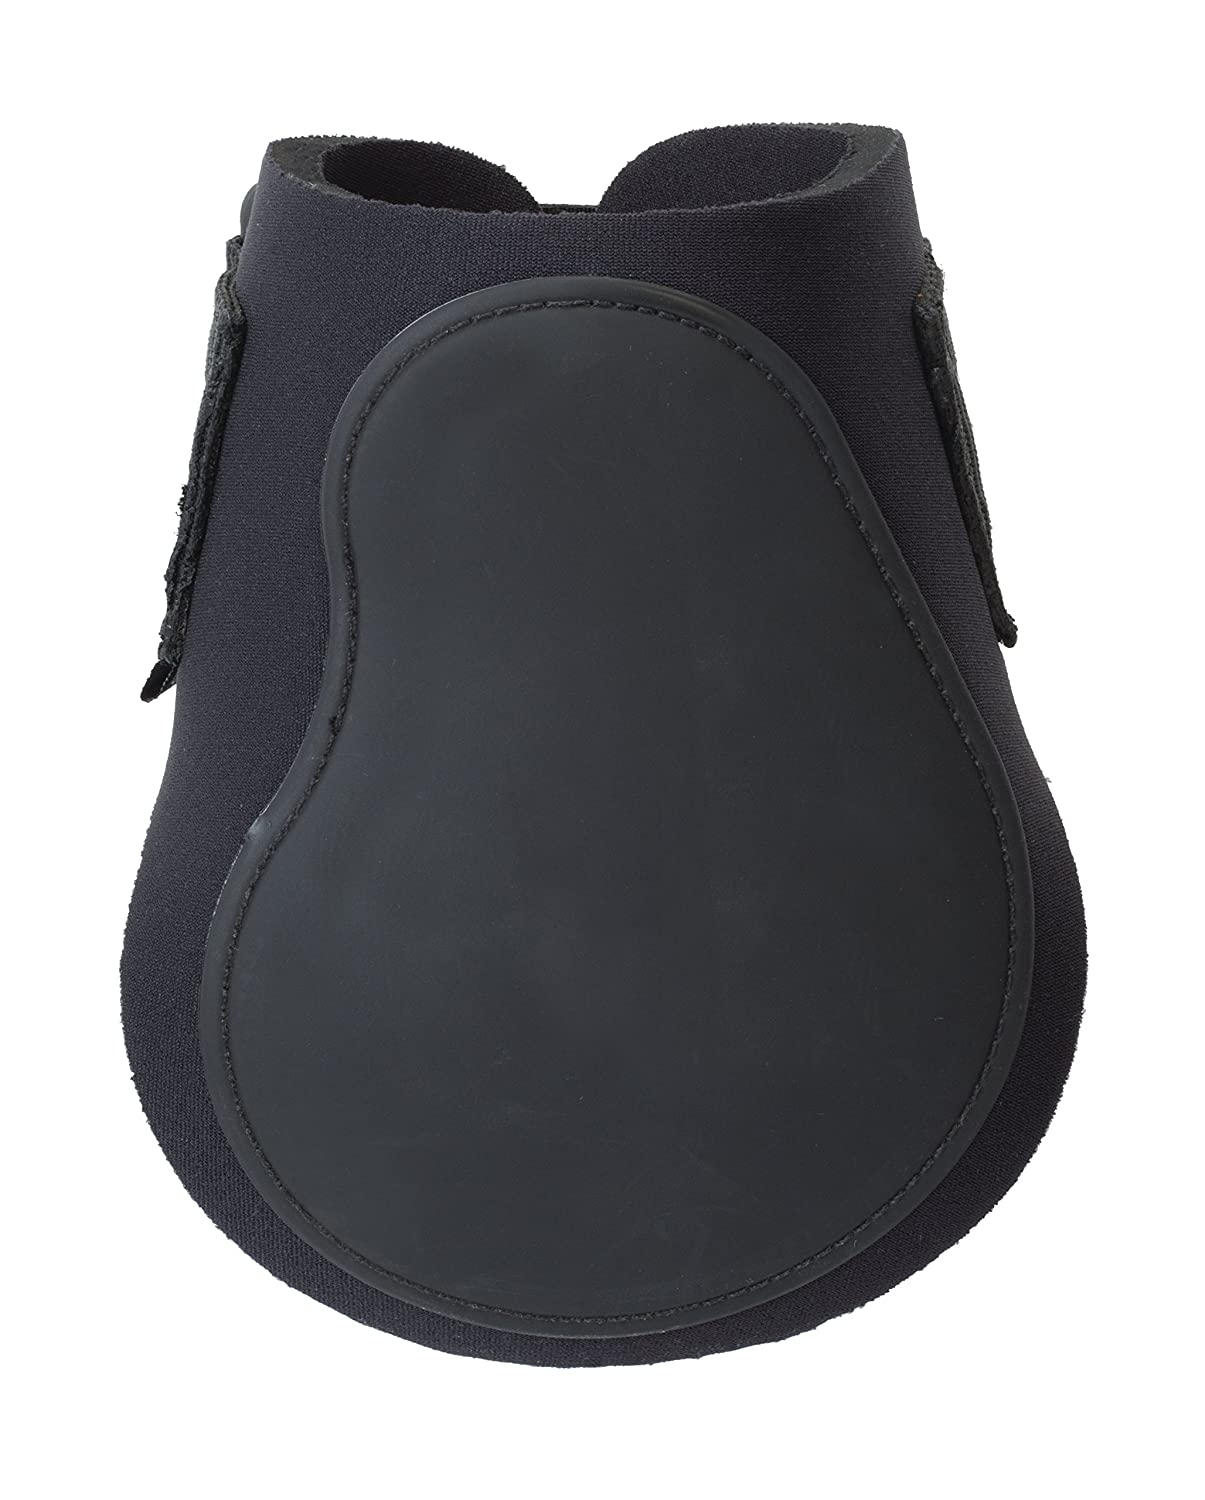 Weaver Leather 35-4315-S1 Fetlock Boots with Xtended Life Closure System